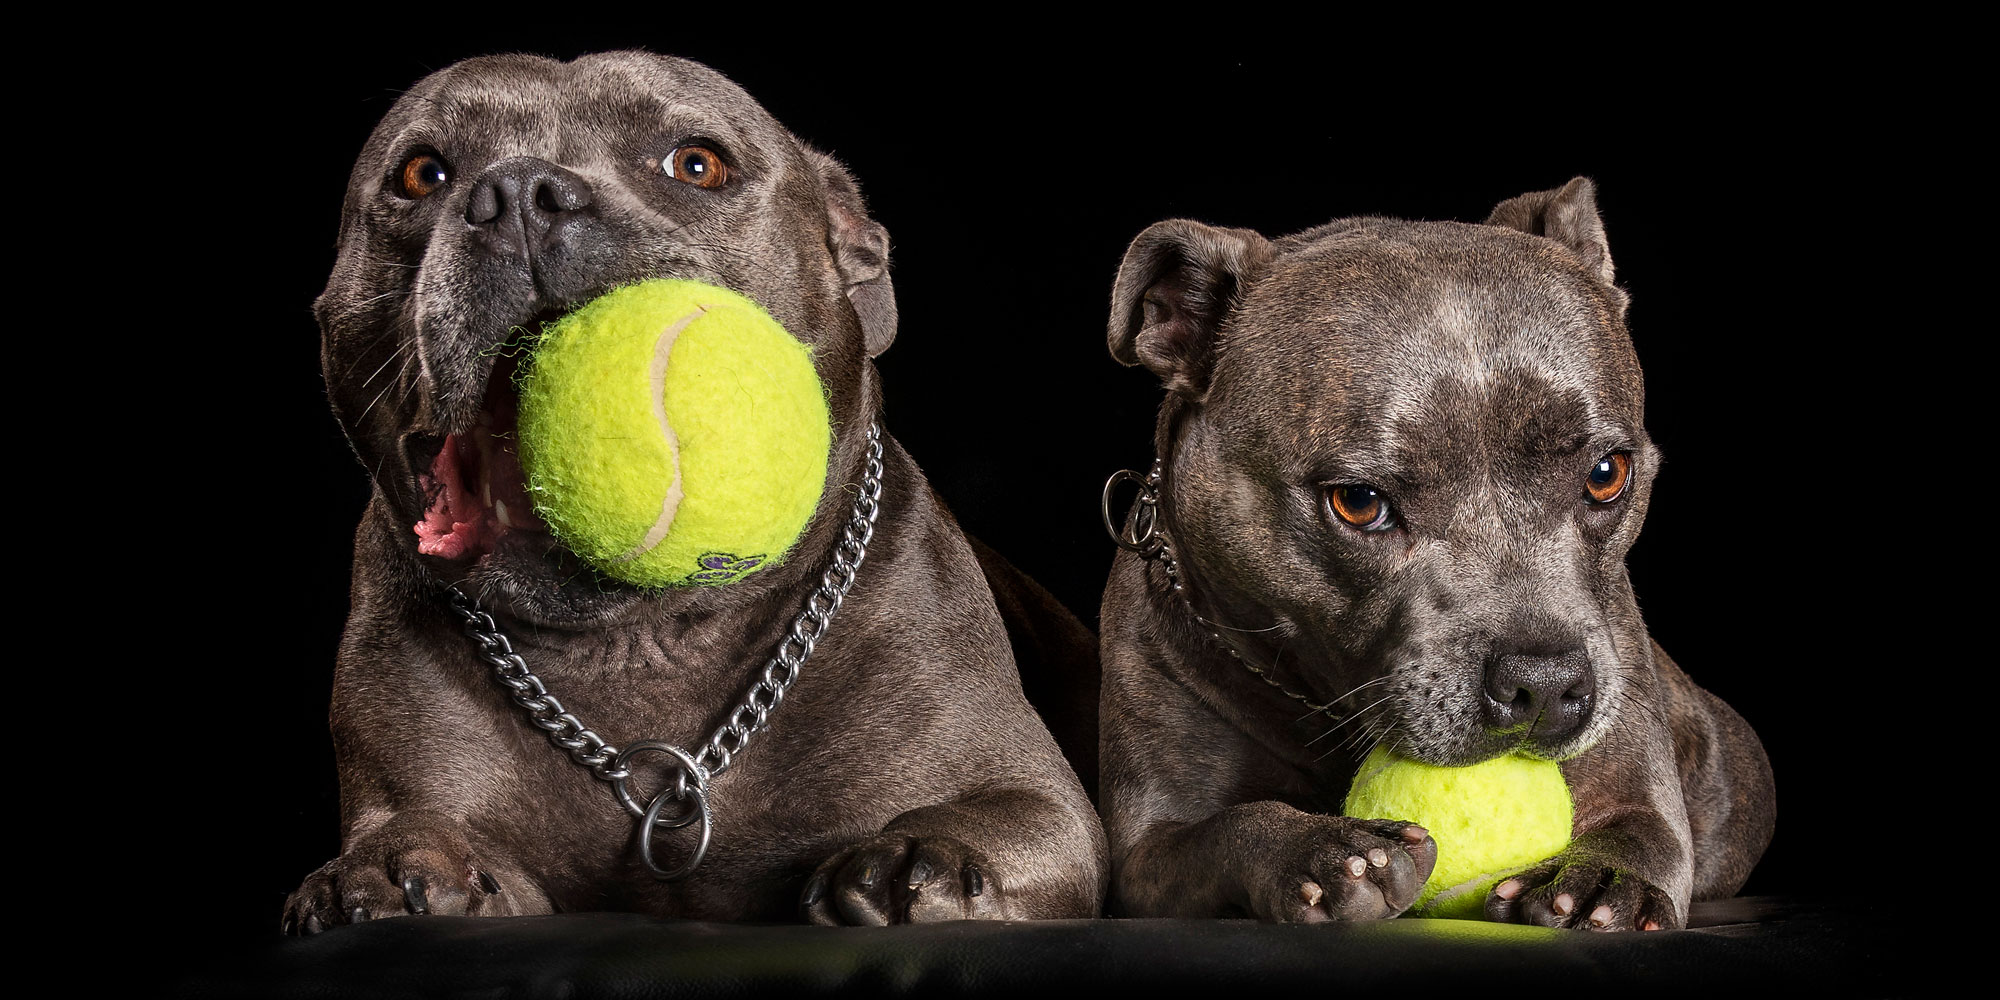 blue staffy fuf-sisters each with yellow ball in mouth